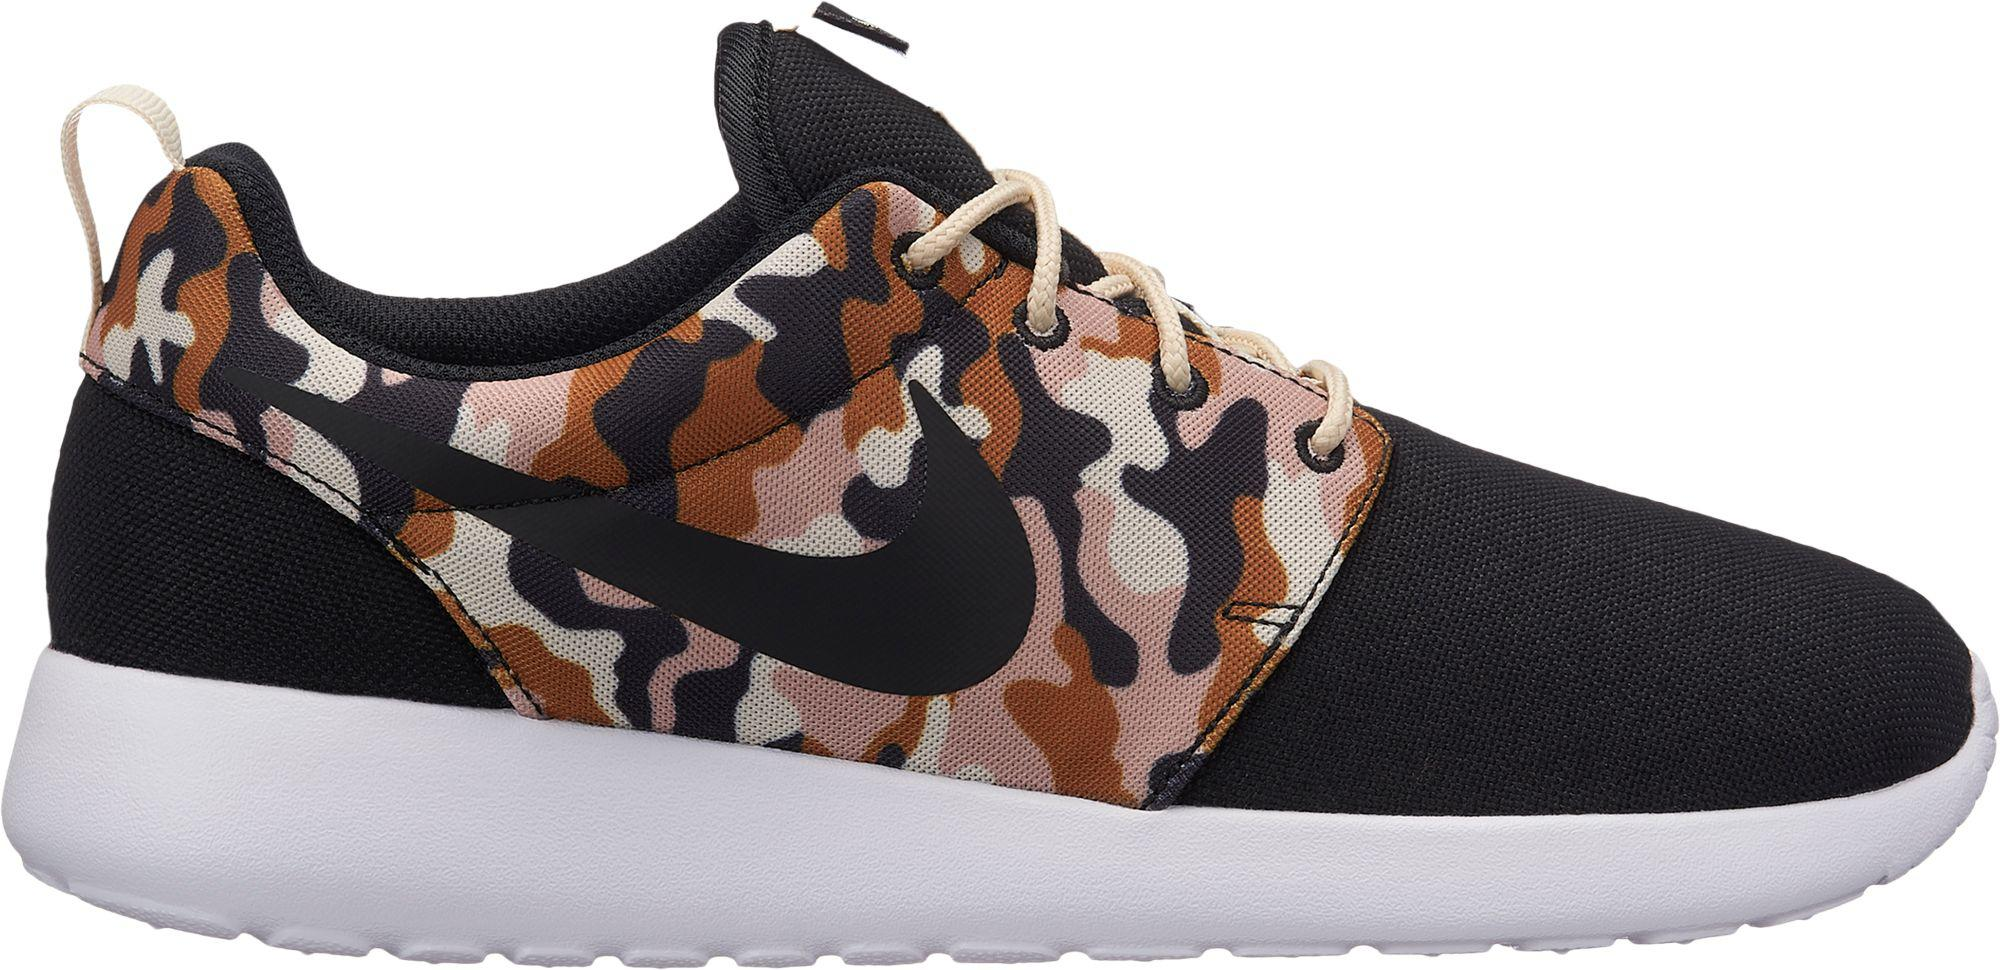 e087c8e978b19 Nike - Multicolor Roshe One Se Camo Shoes for Men - Lyst. View fullscreen